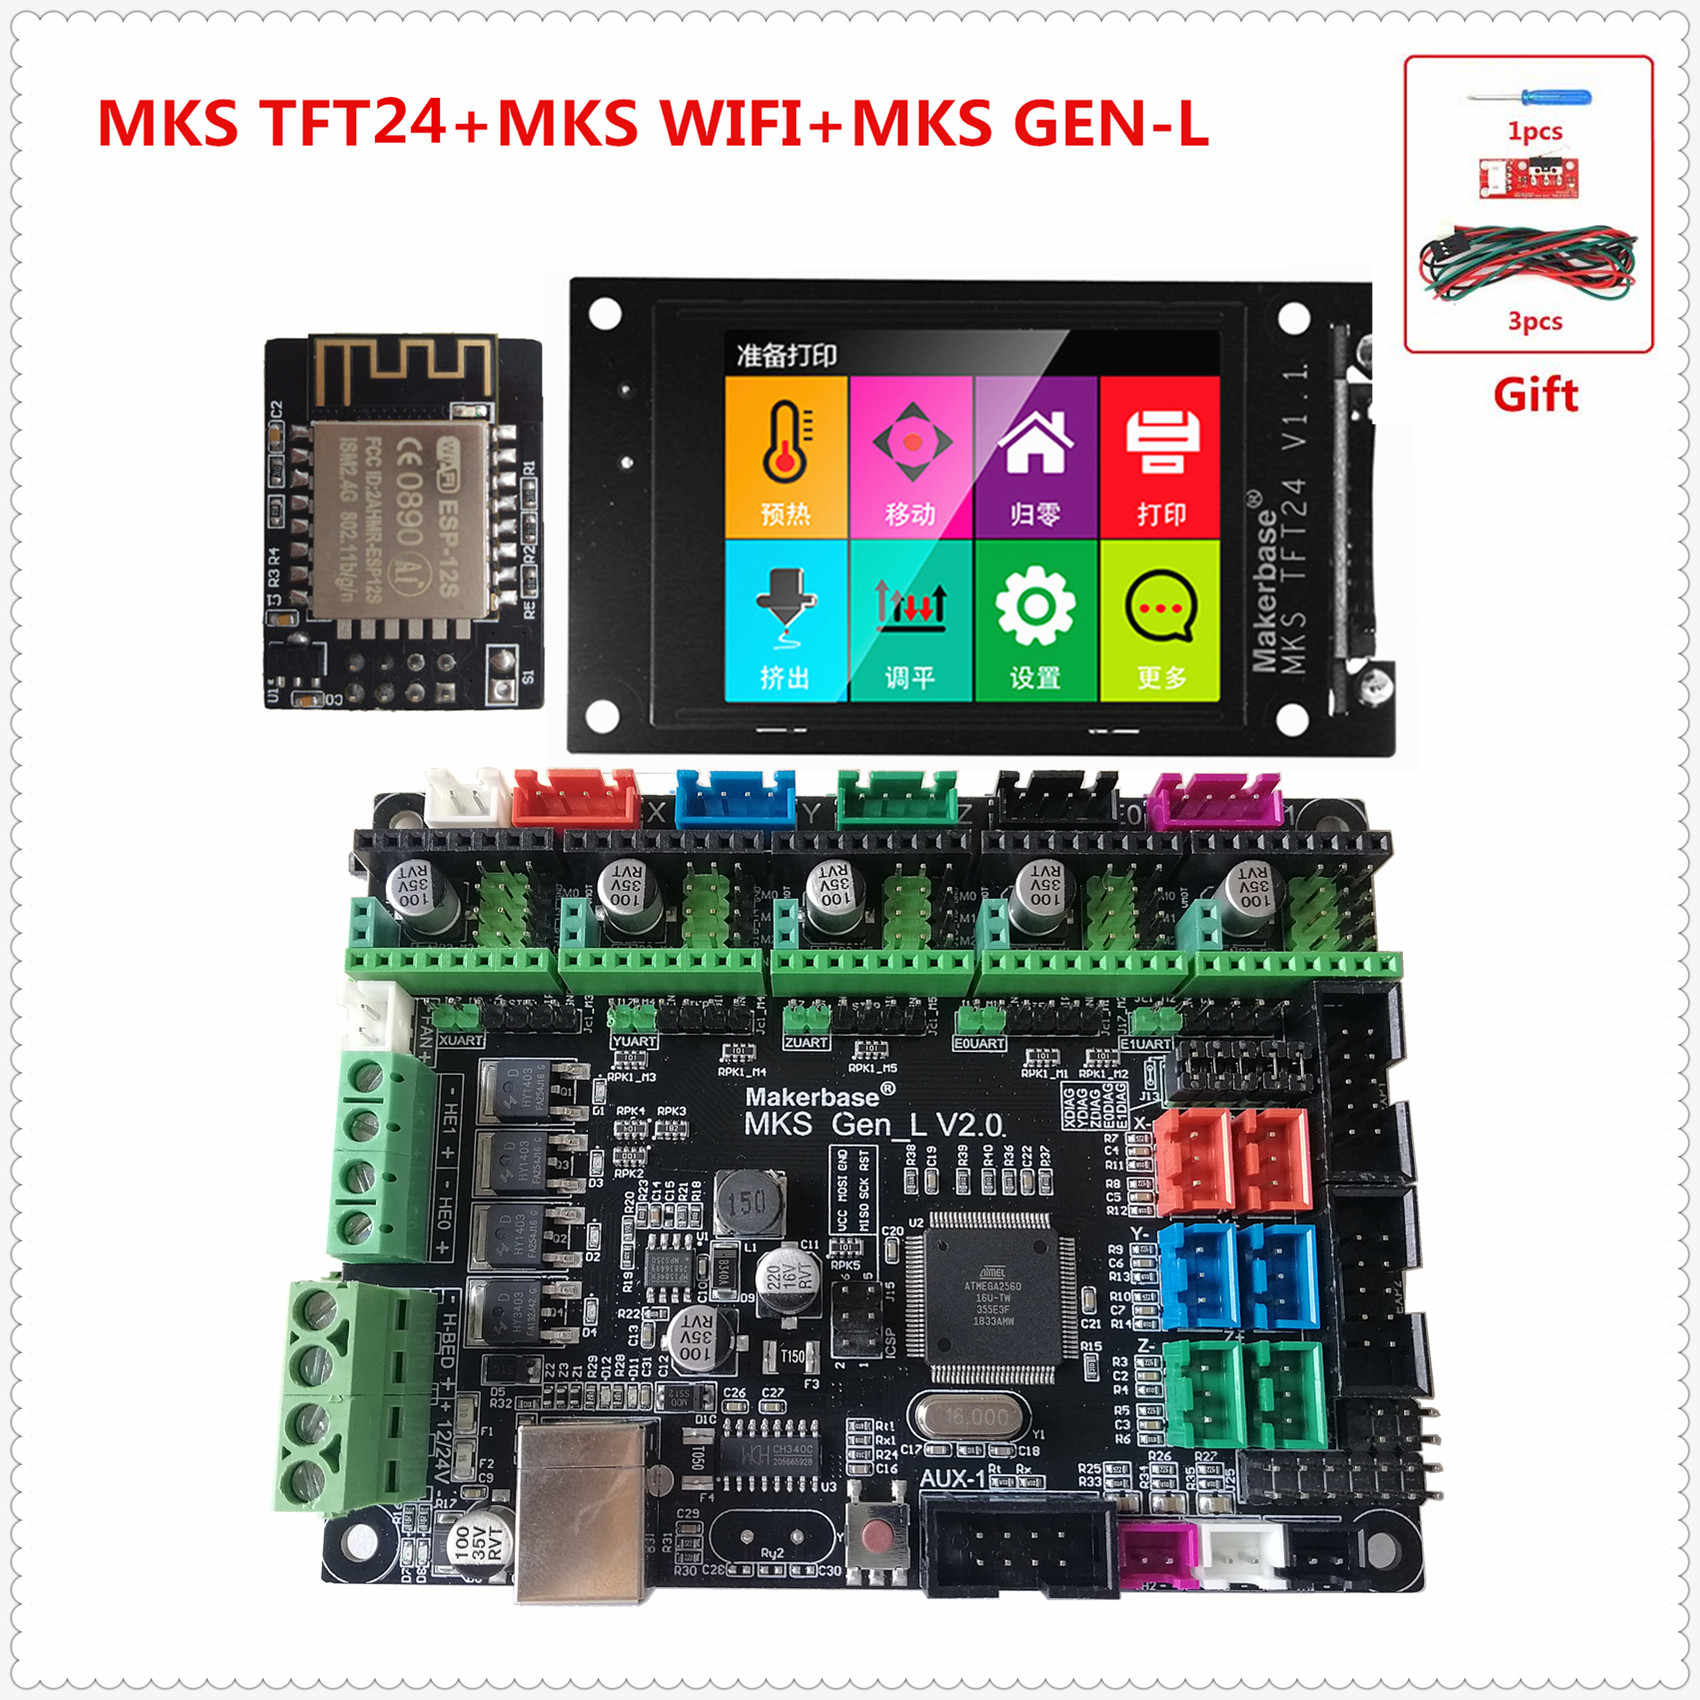 MKS GEN-L 2.0 Papan Utama MKS TFT24 Layar Sentuh TFT 2.4 LCD Display MKS Wifi 3D Printer Perisai Kontrol Panel DIY starter Kit